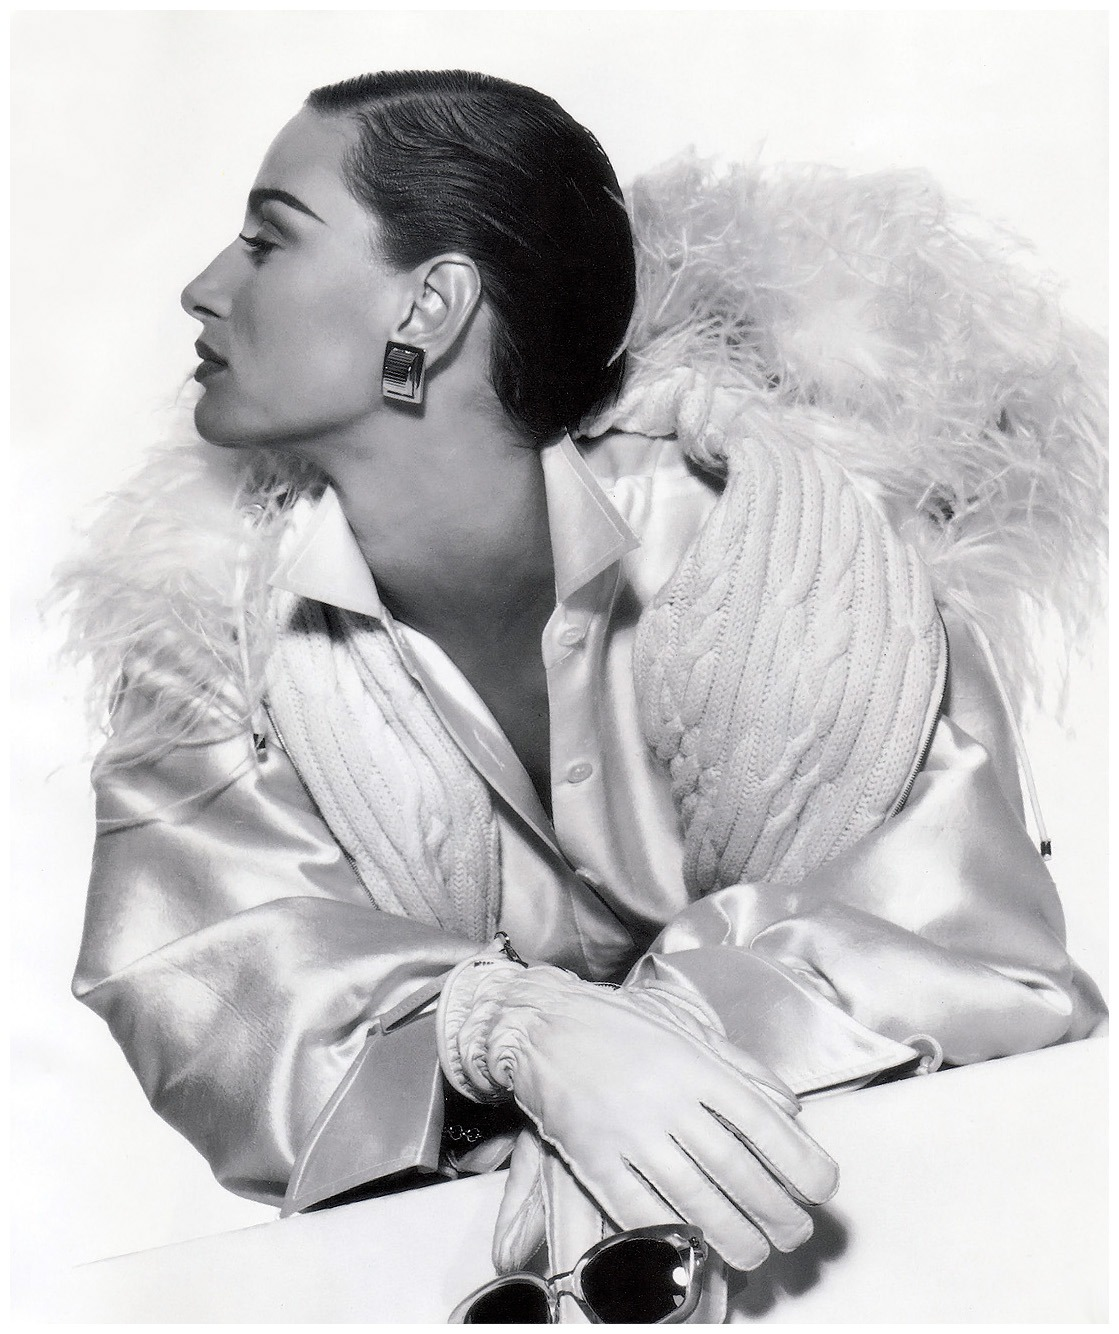 Gianfranco Ferre Vogue Sep 1991 AD Featuring Aly Dunne Photographed by Gianpaolo Barbieri